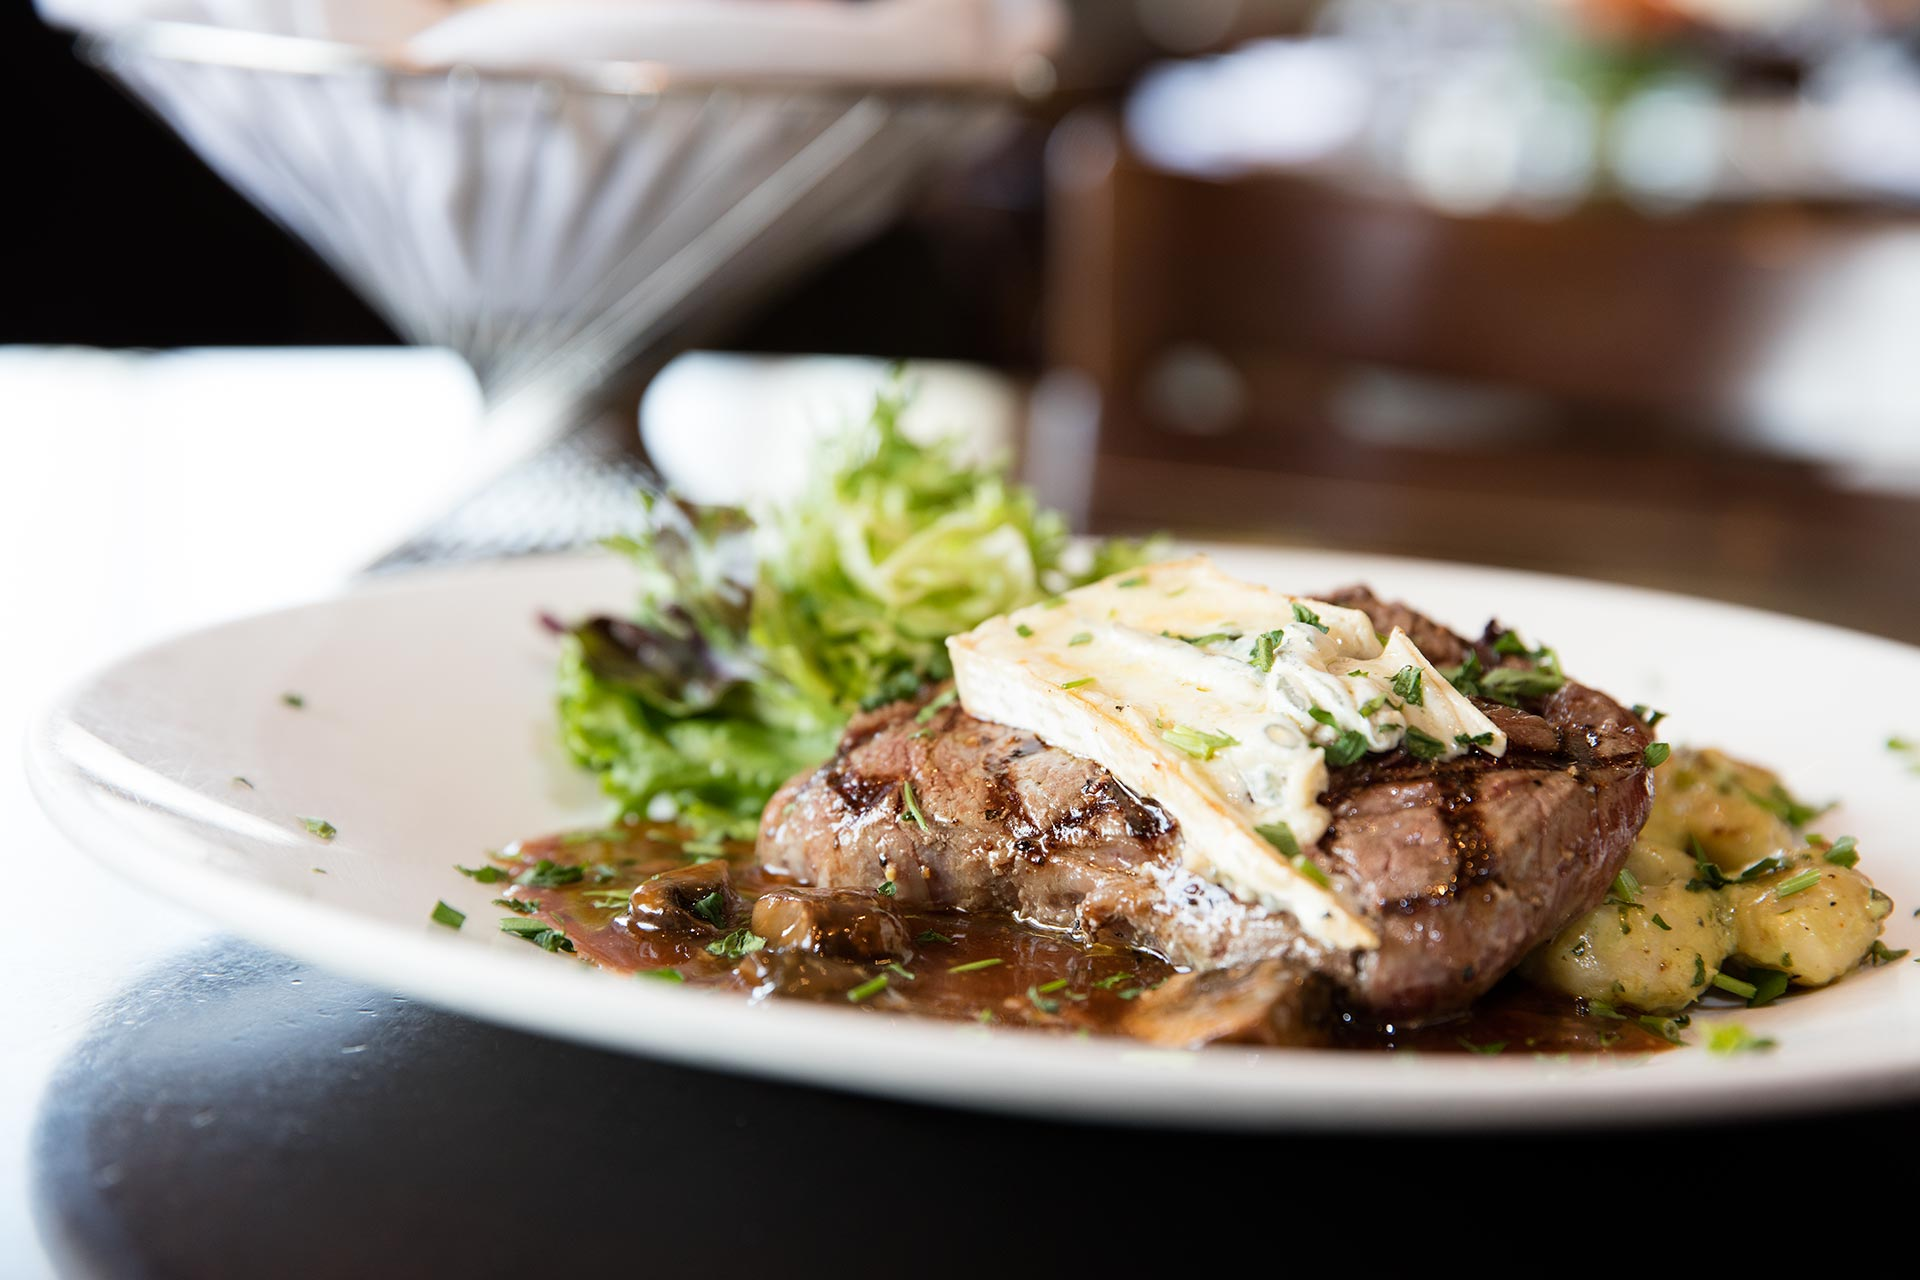 Olives is the best place to get a delicious steak in Mankato, Minnesota.